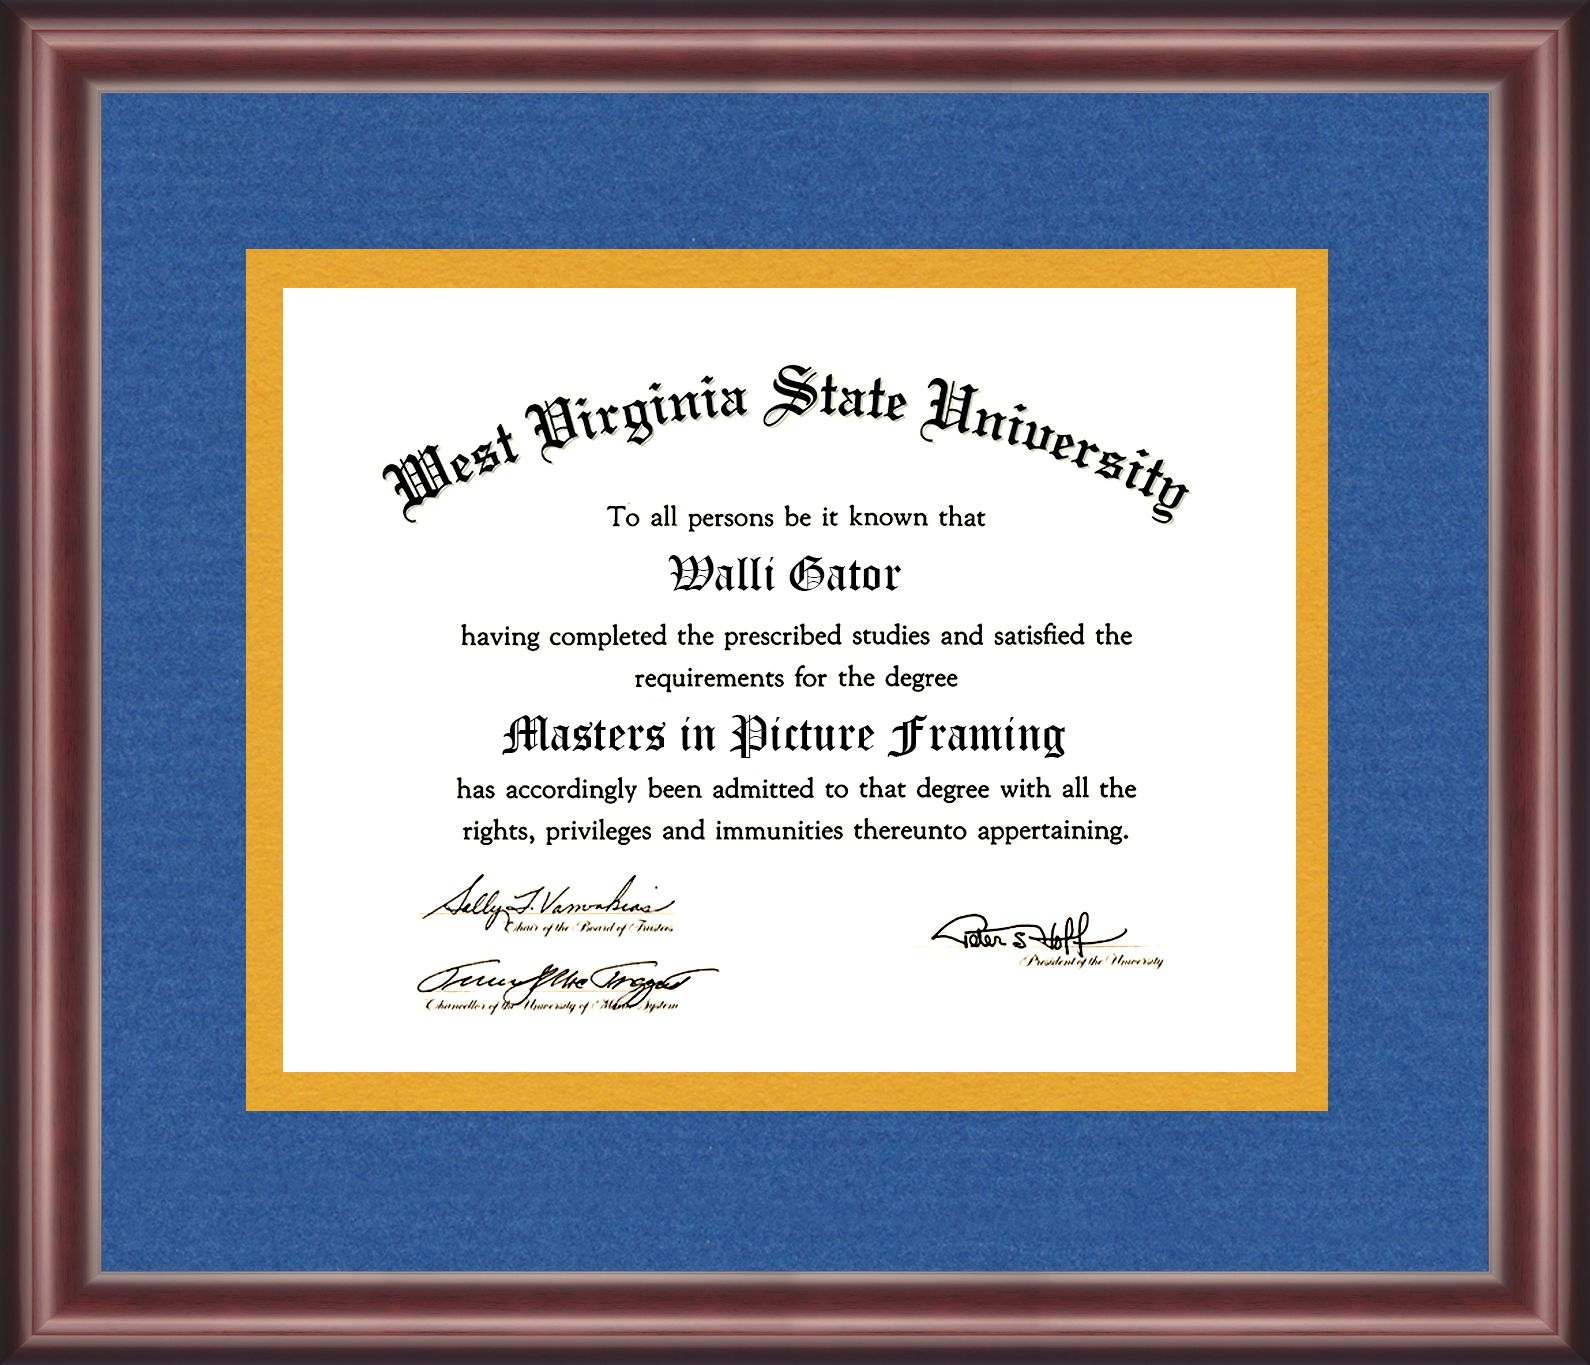 West Virginia State University Diploma Frame With Images